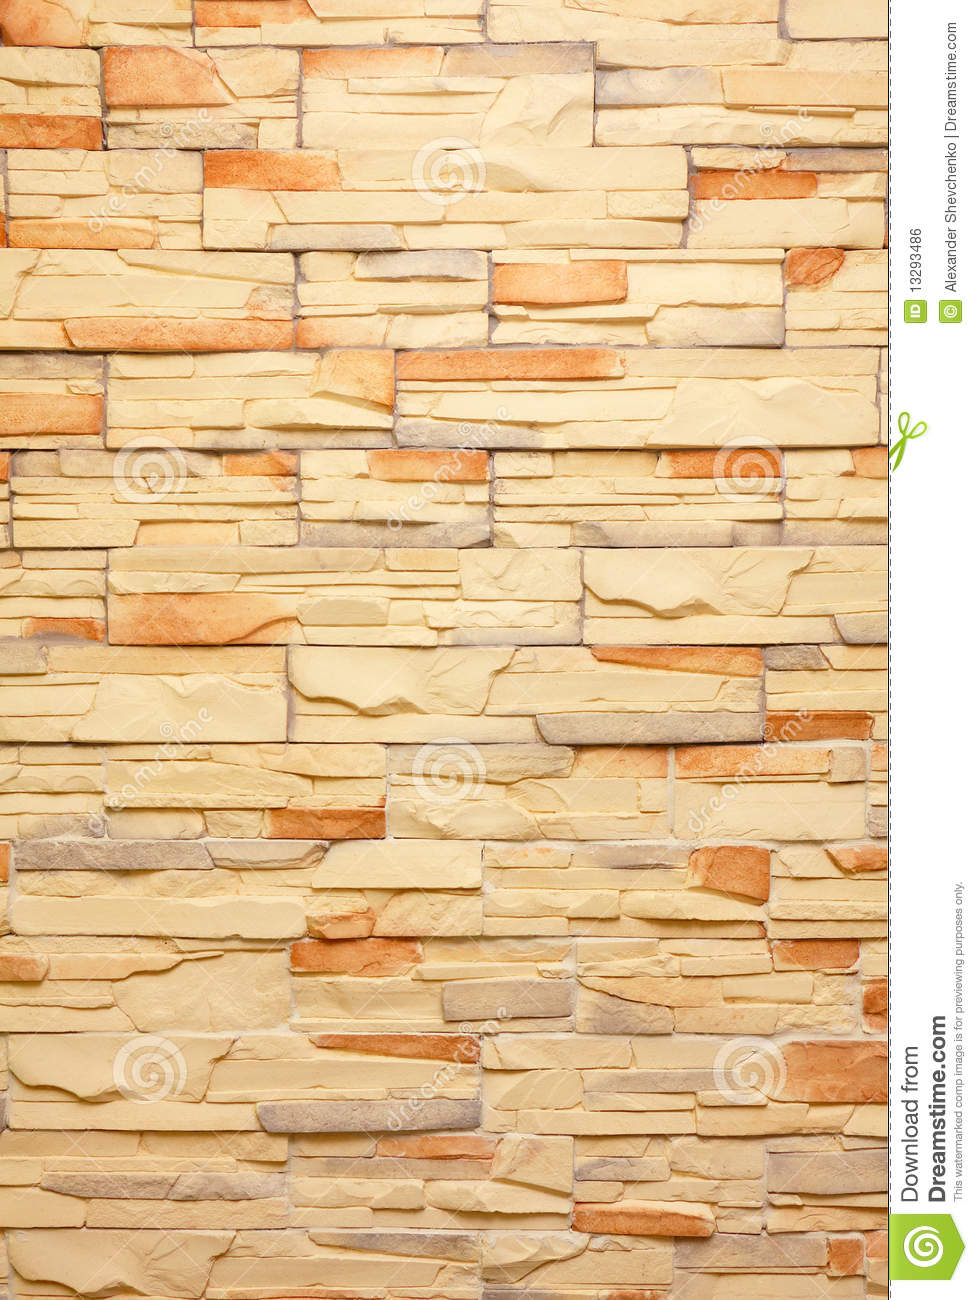 Decorative Tiles Wall Royalty Free Stock Image Image